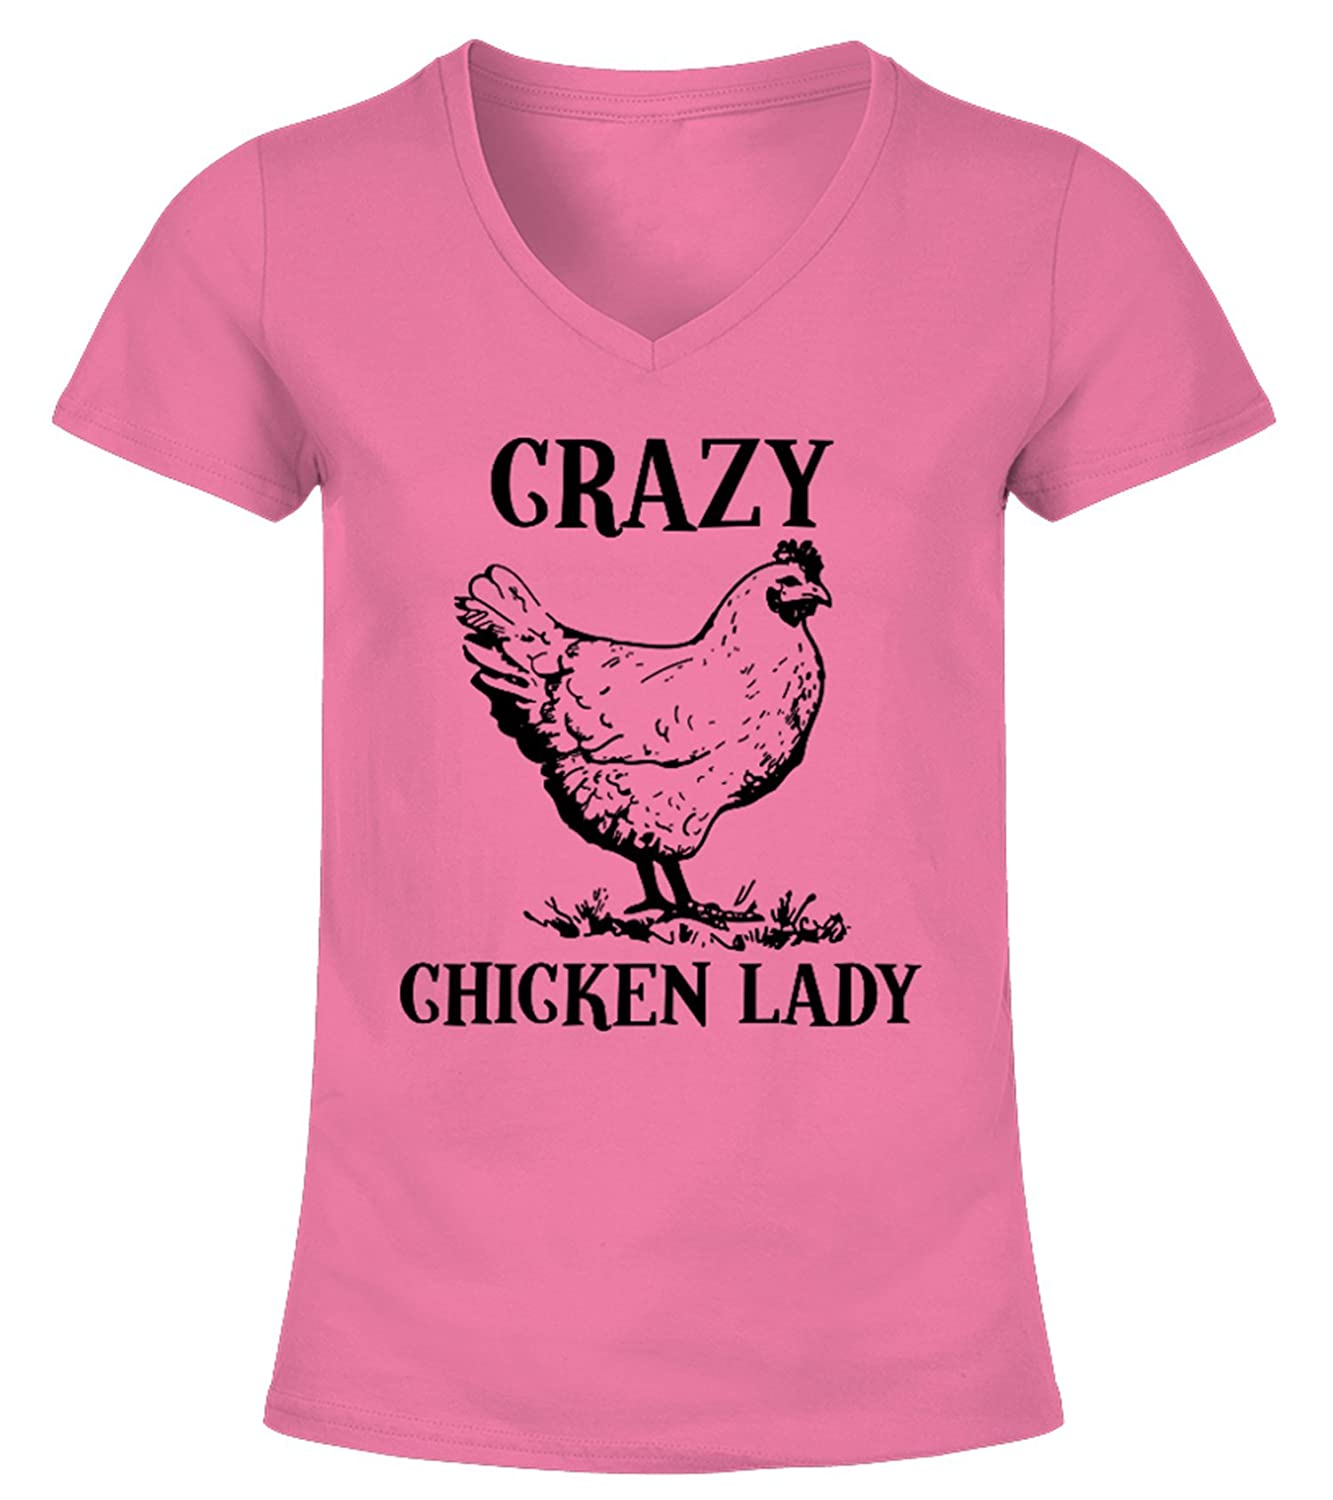 Crazy Chicken Lady Shirt, Funny Farm Shirt, Chicken Lovers Gifts, Women T-Shirt